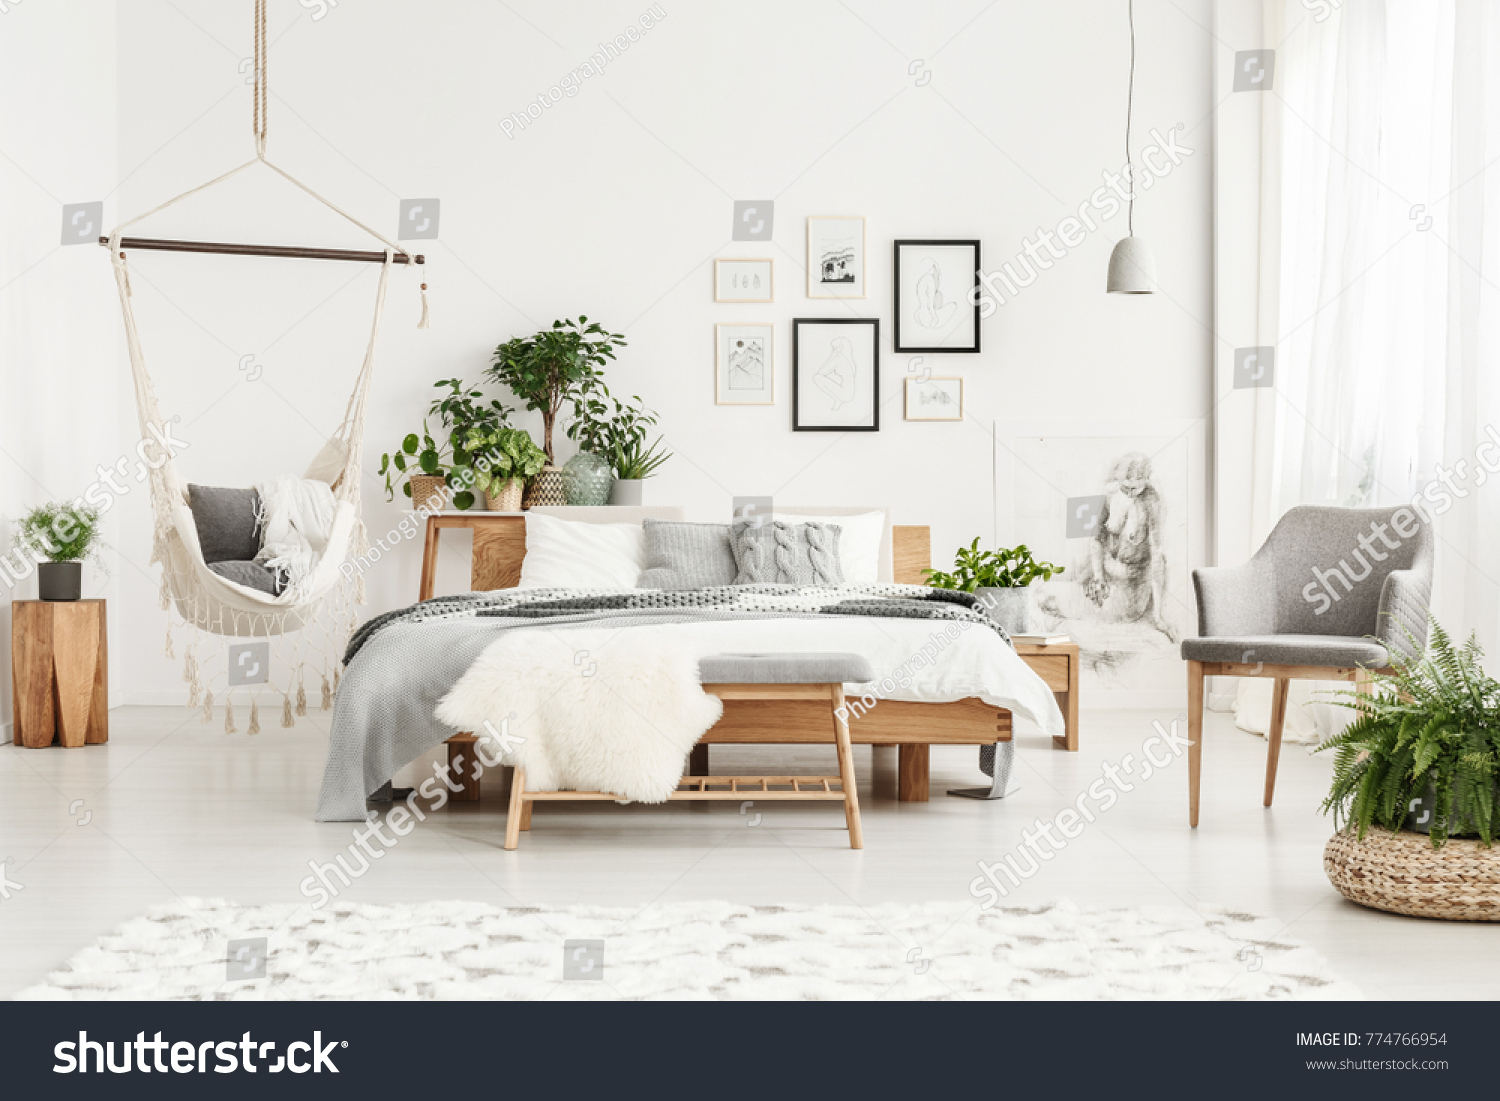 White Fur On Bench Grey Chair Stock Photo & Image (Royalty-Free ...